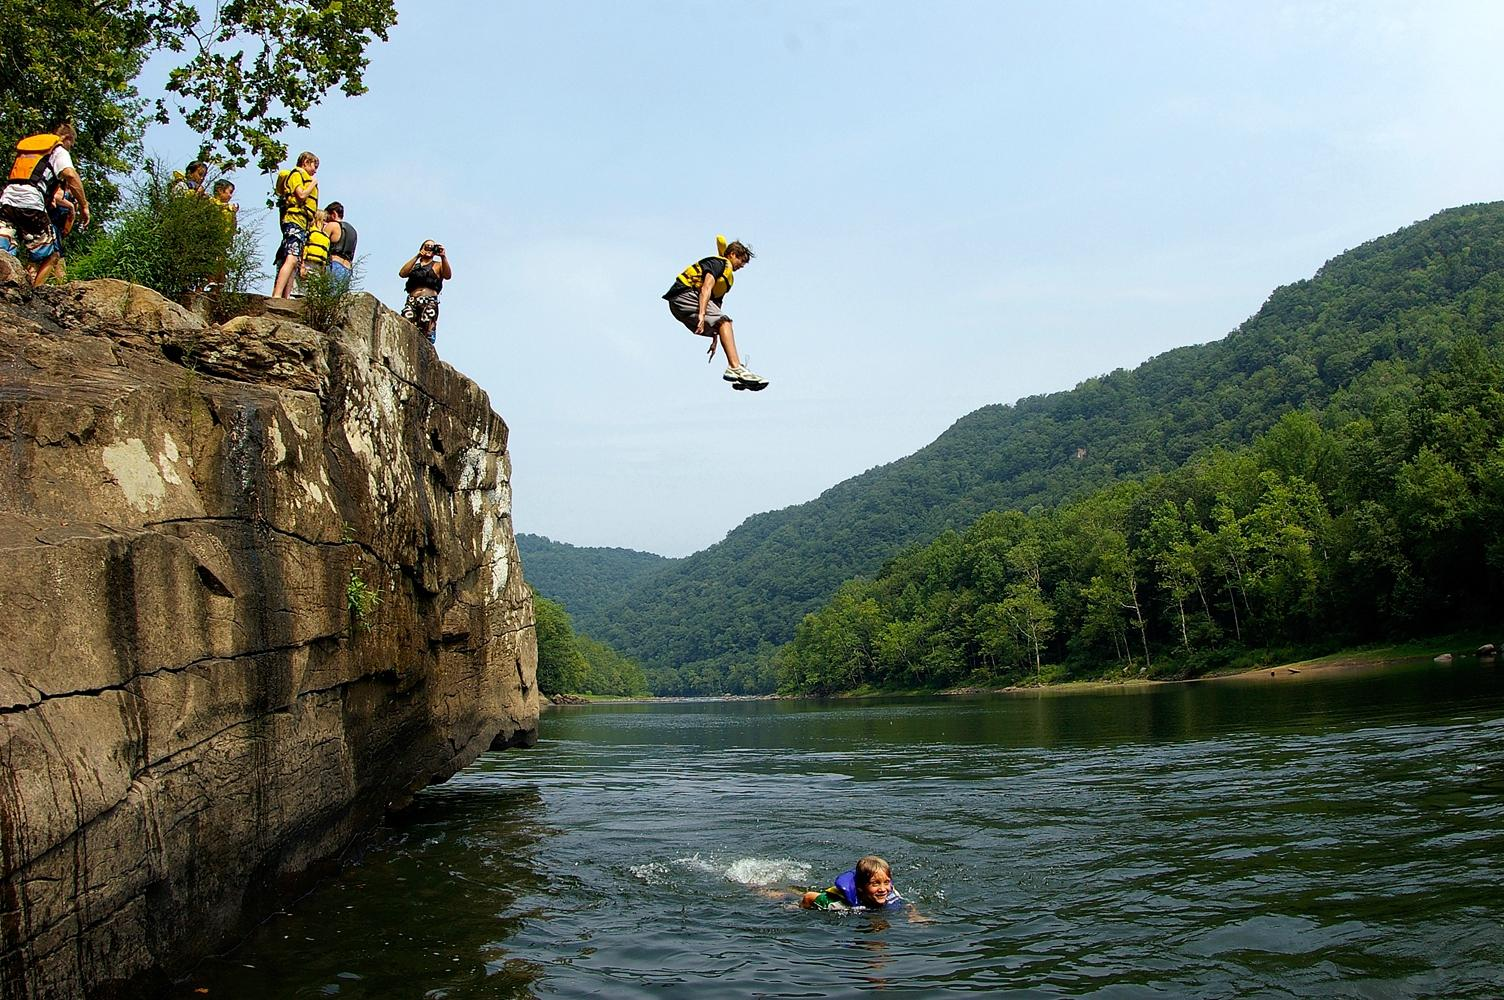 Ace Adventure Resort In West Virginia Is Perfect For A Summer Family Vacation